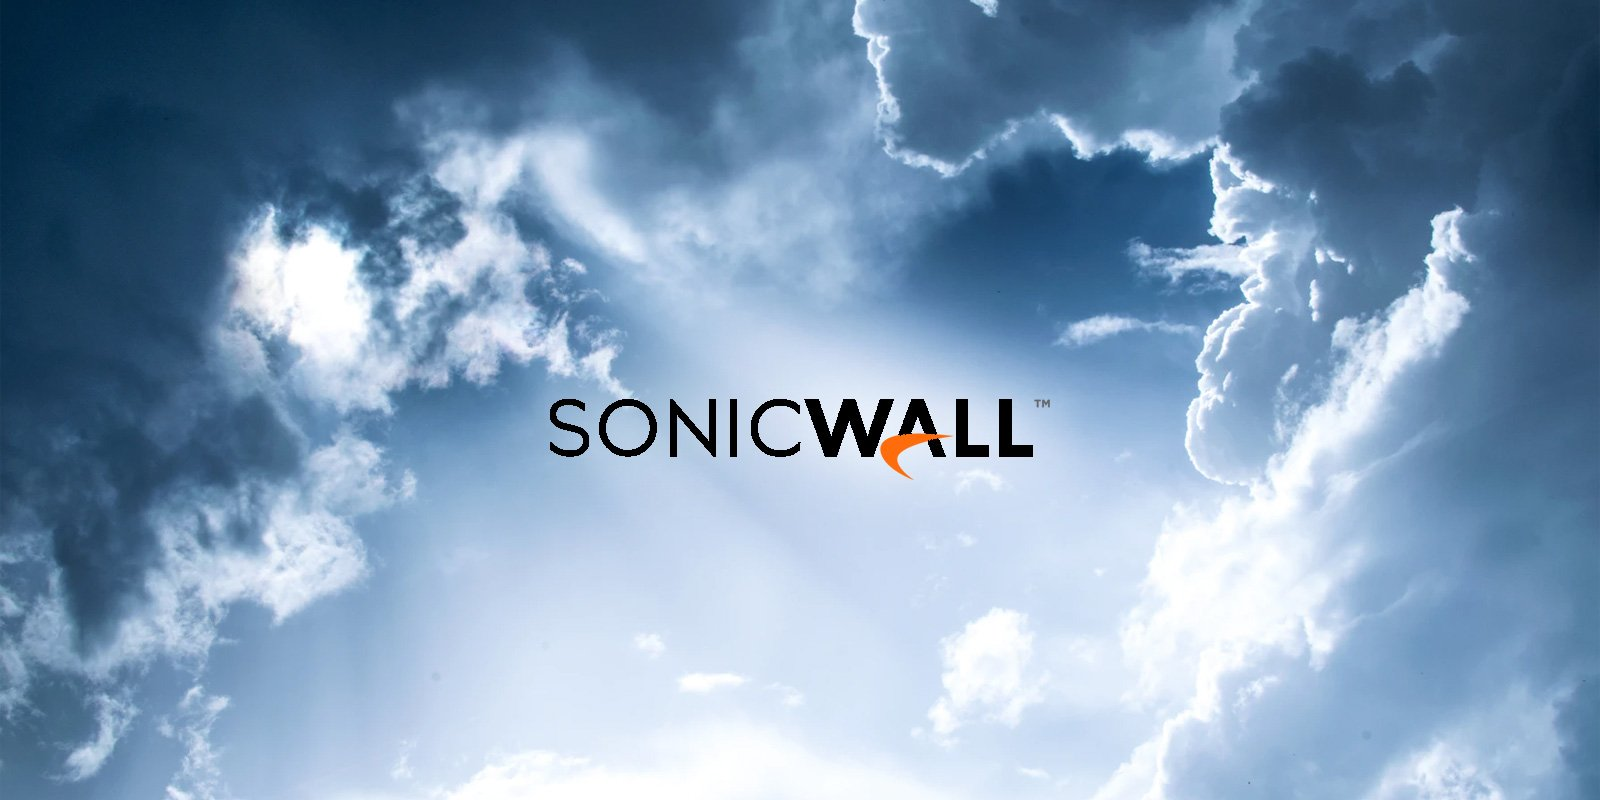 SonicWall warns customers to patch 3 zero-days exploited in the wild